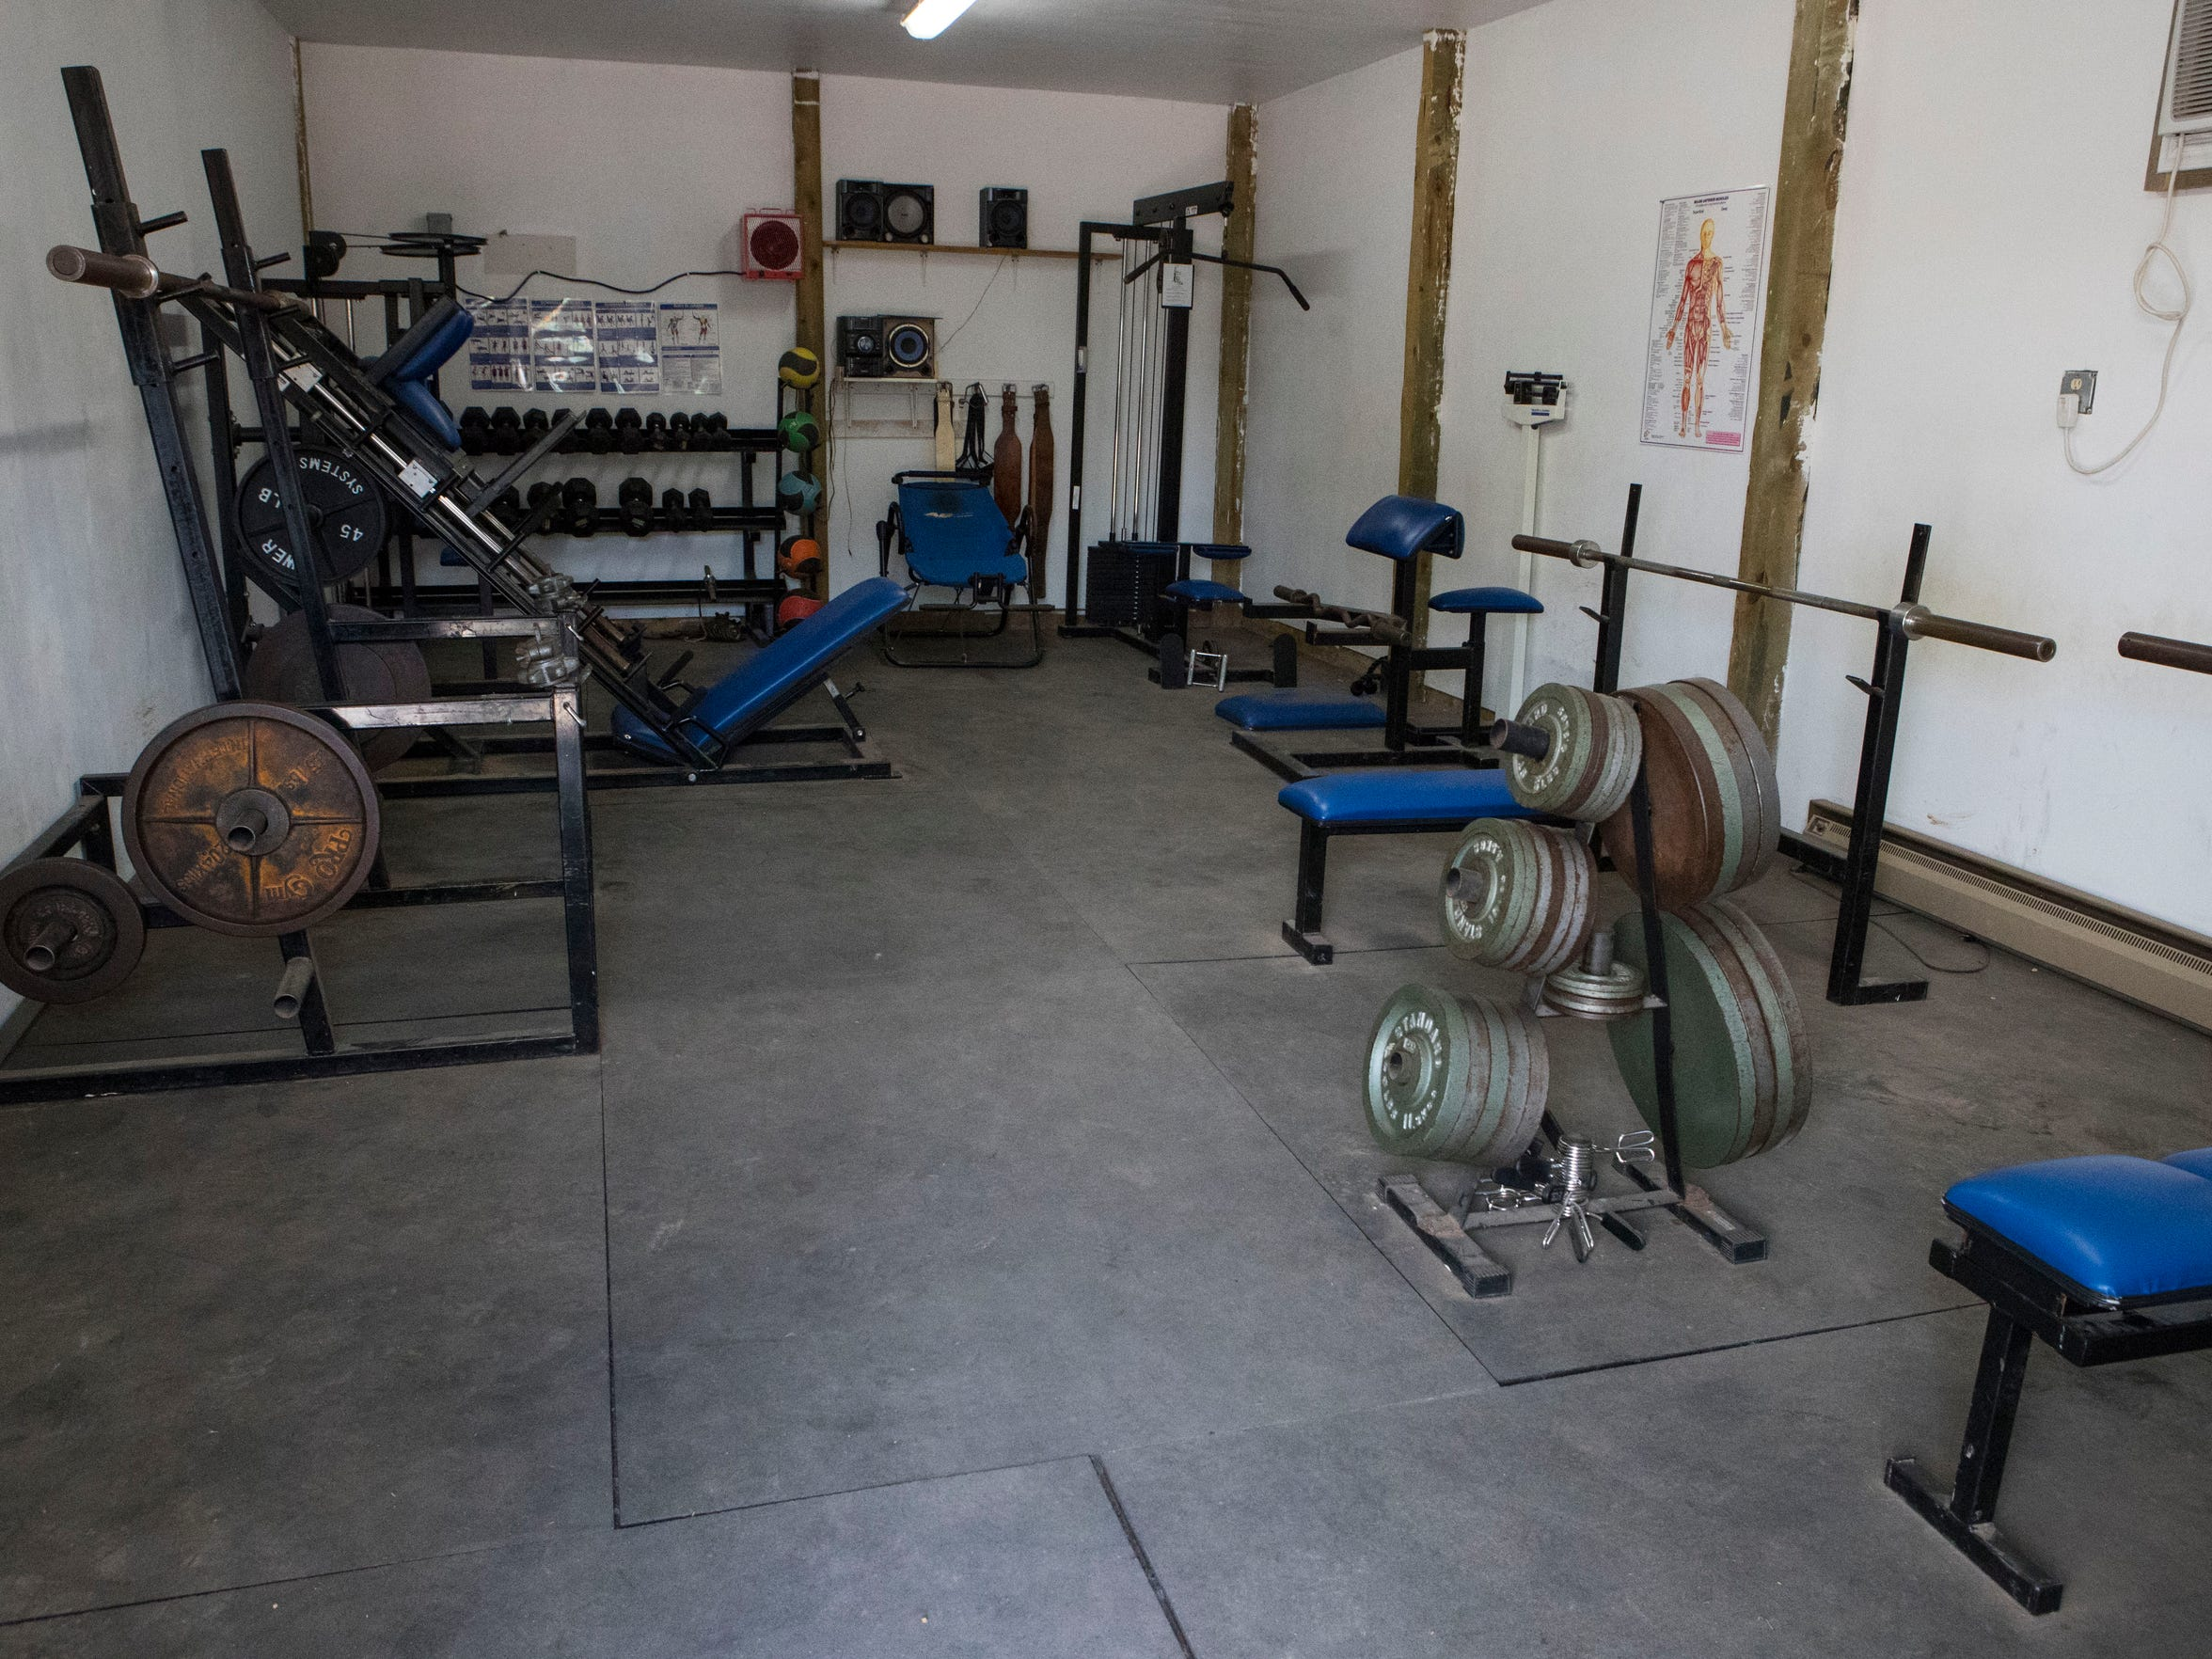 The weight room at Oelrichs High School Tuesday, July